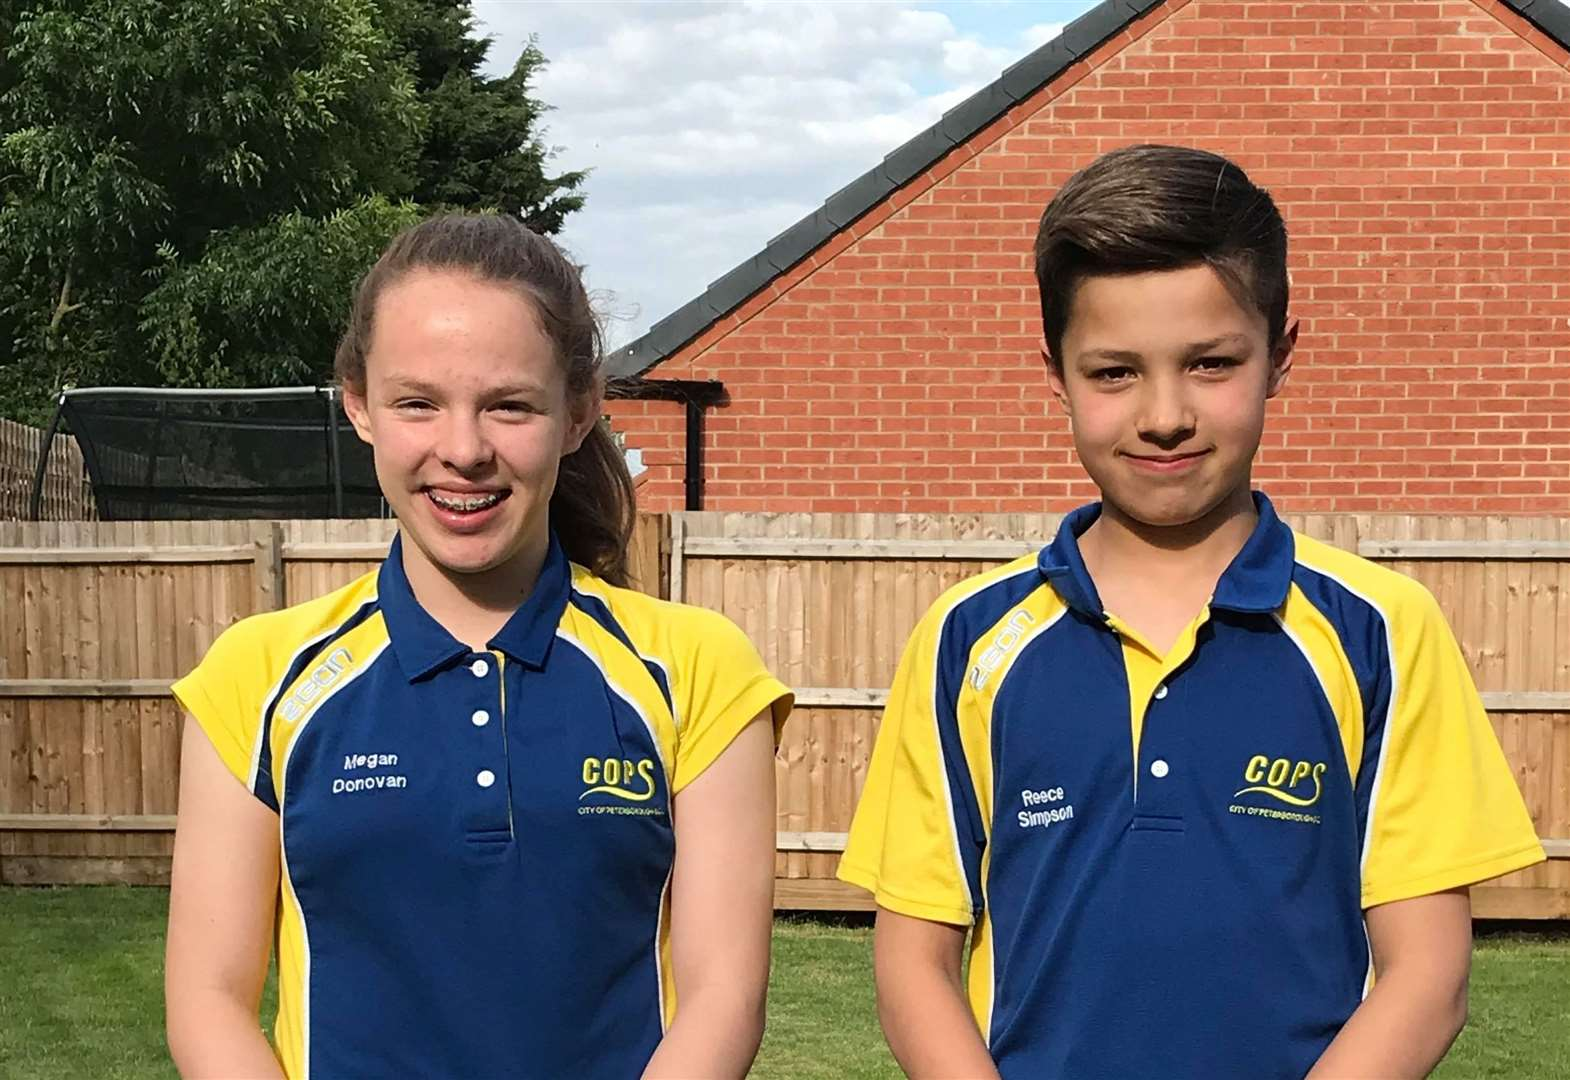 Swimming: ex-Chatteris duo careers blossom